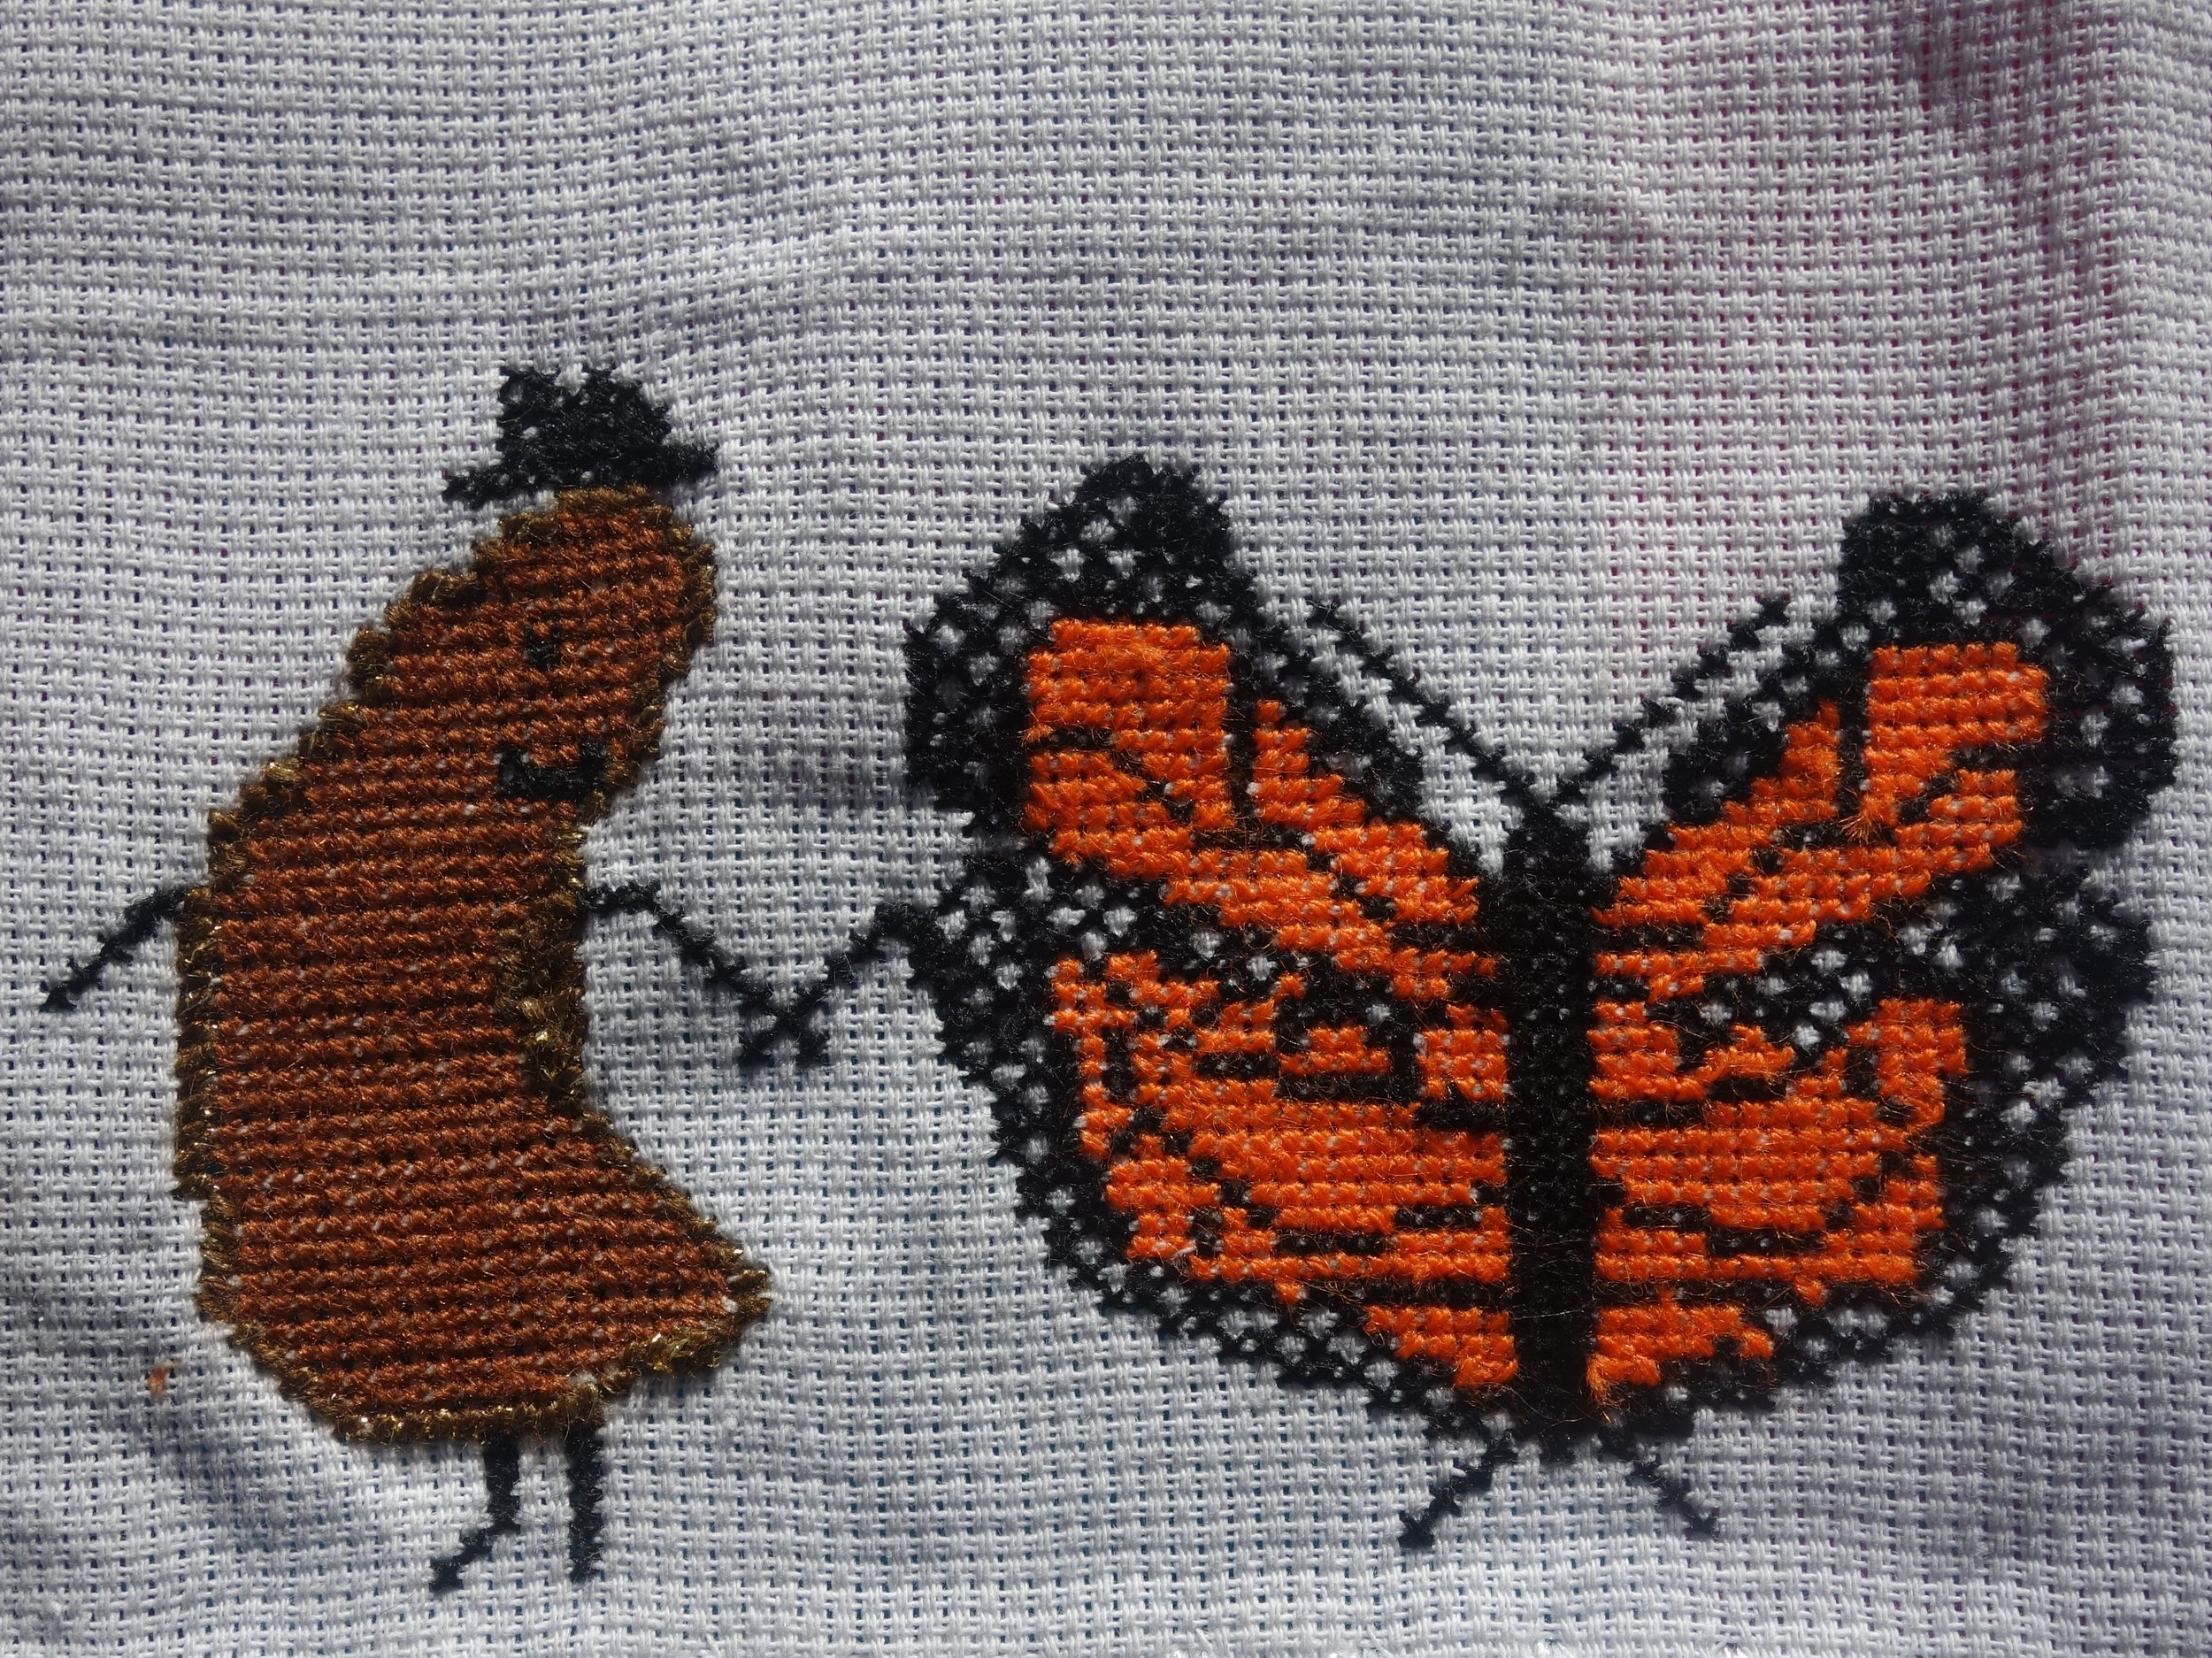 Monarchs dancing with beans!